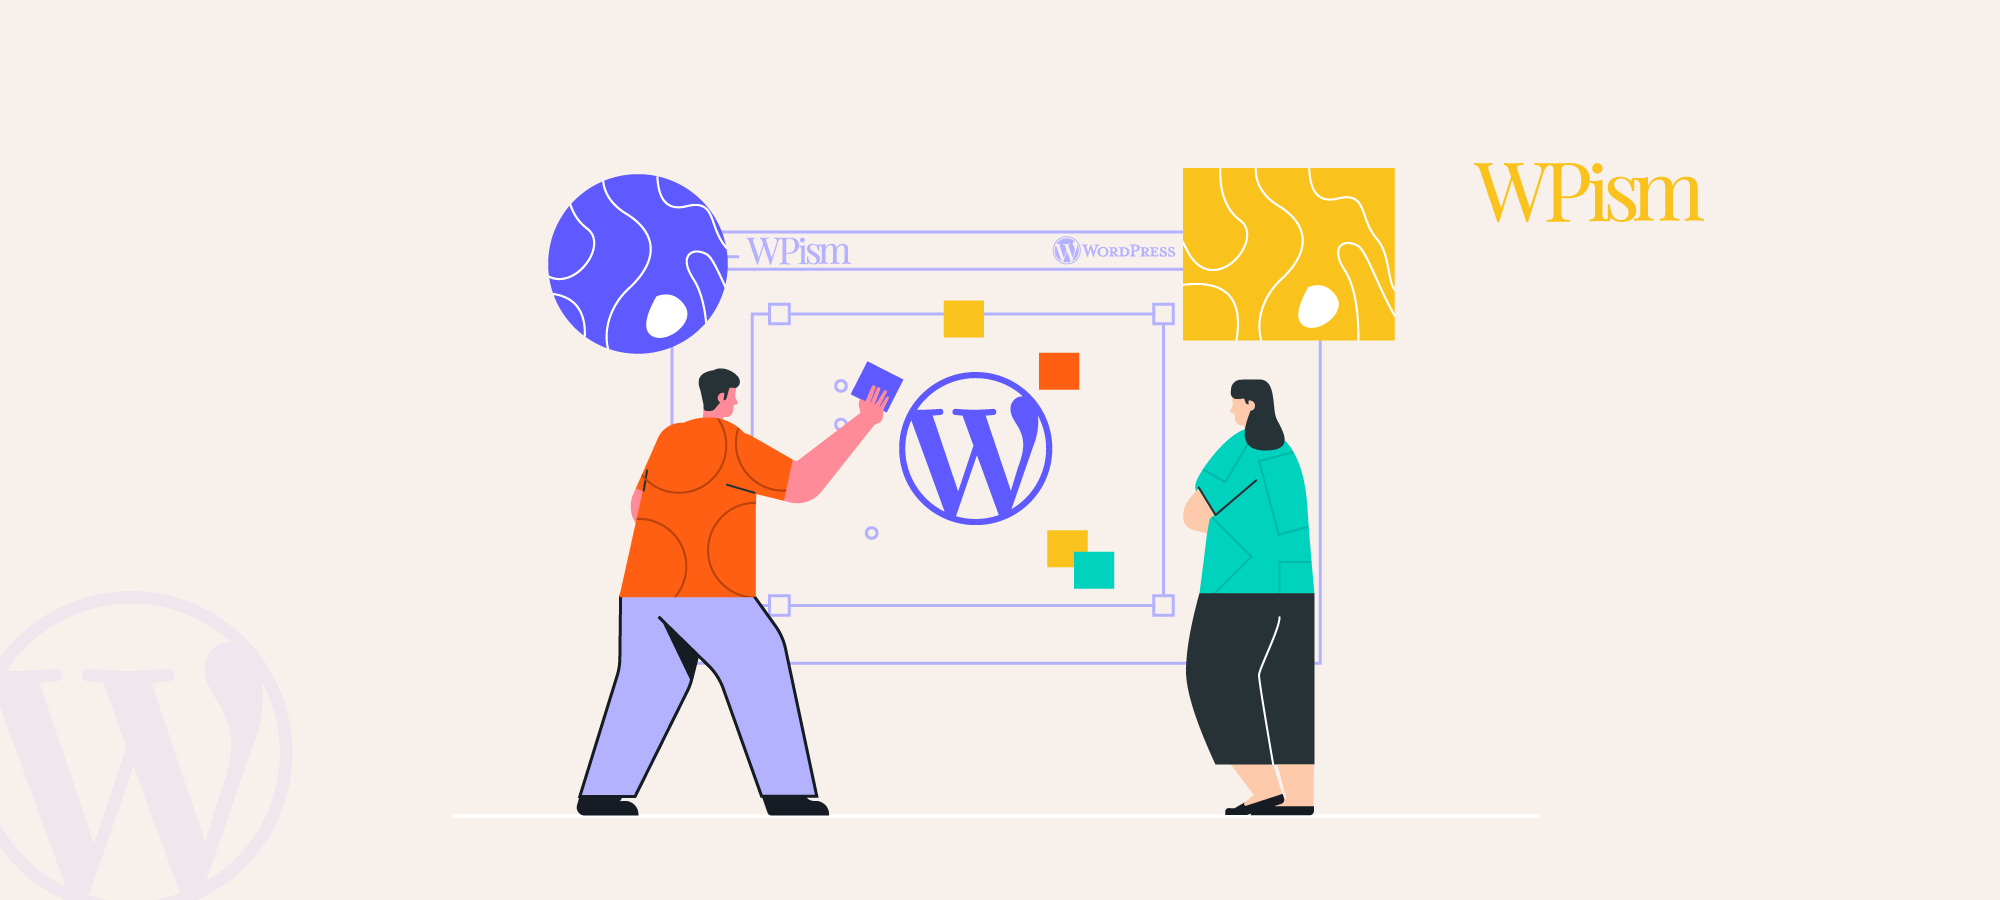 WordPress 5.5 Release – New Features and Updates